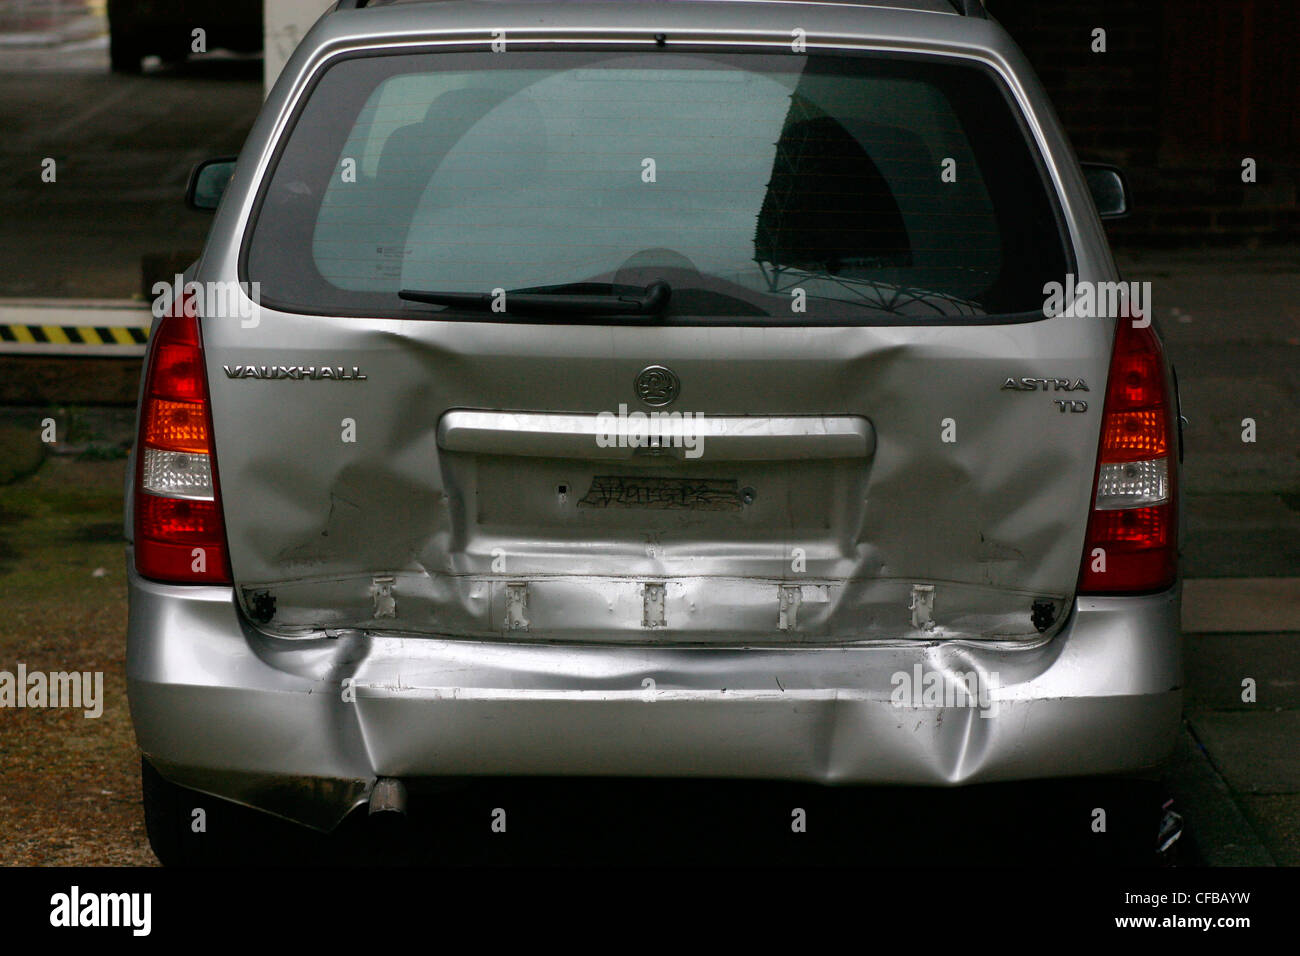 Rear ended car, London, UK. - Stock Image